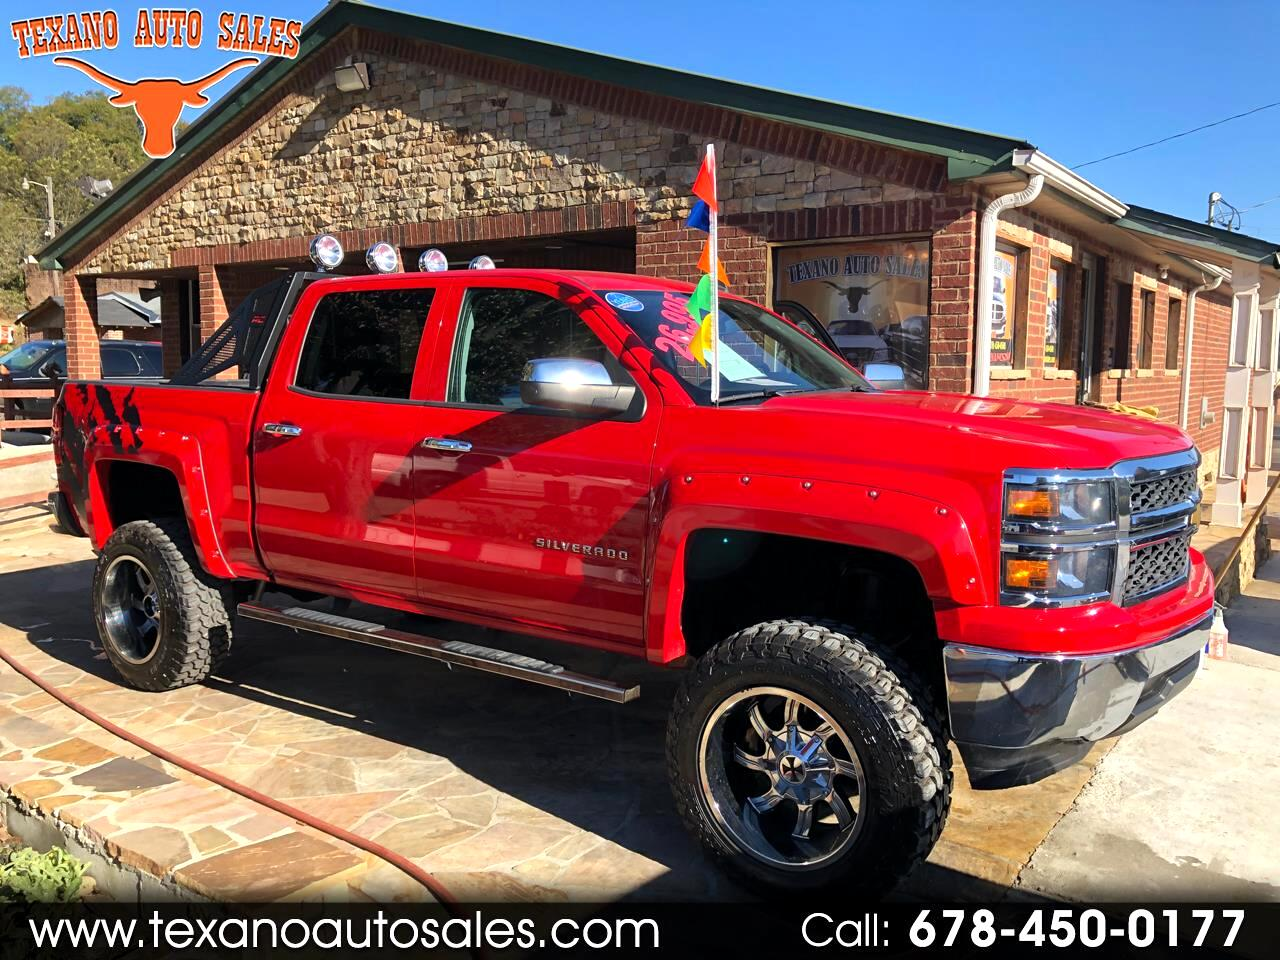 Used Cars for Sale Gainesville GA 30501 Texano Auto Sales